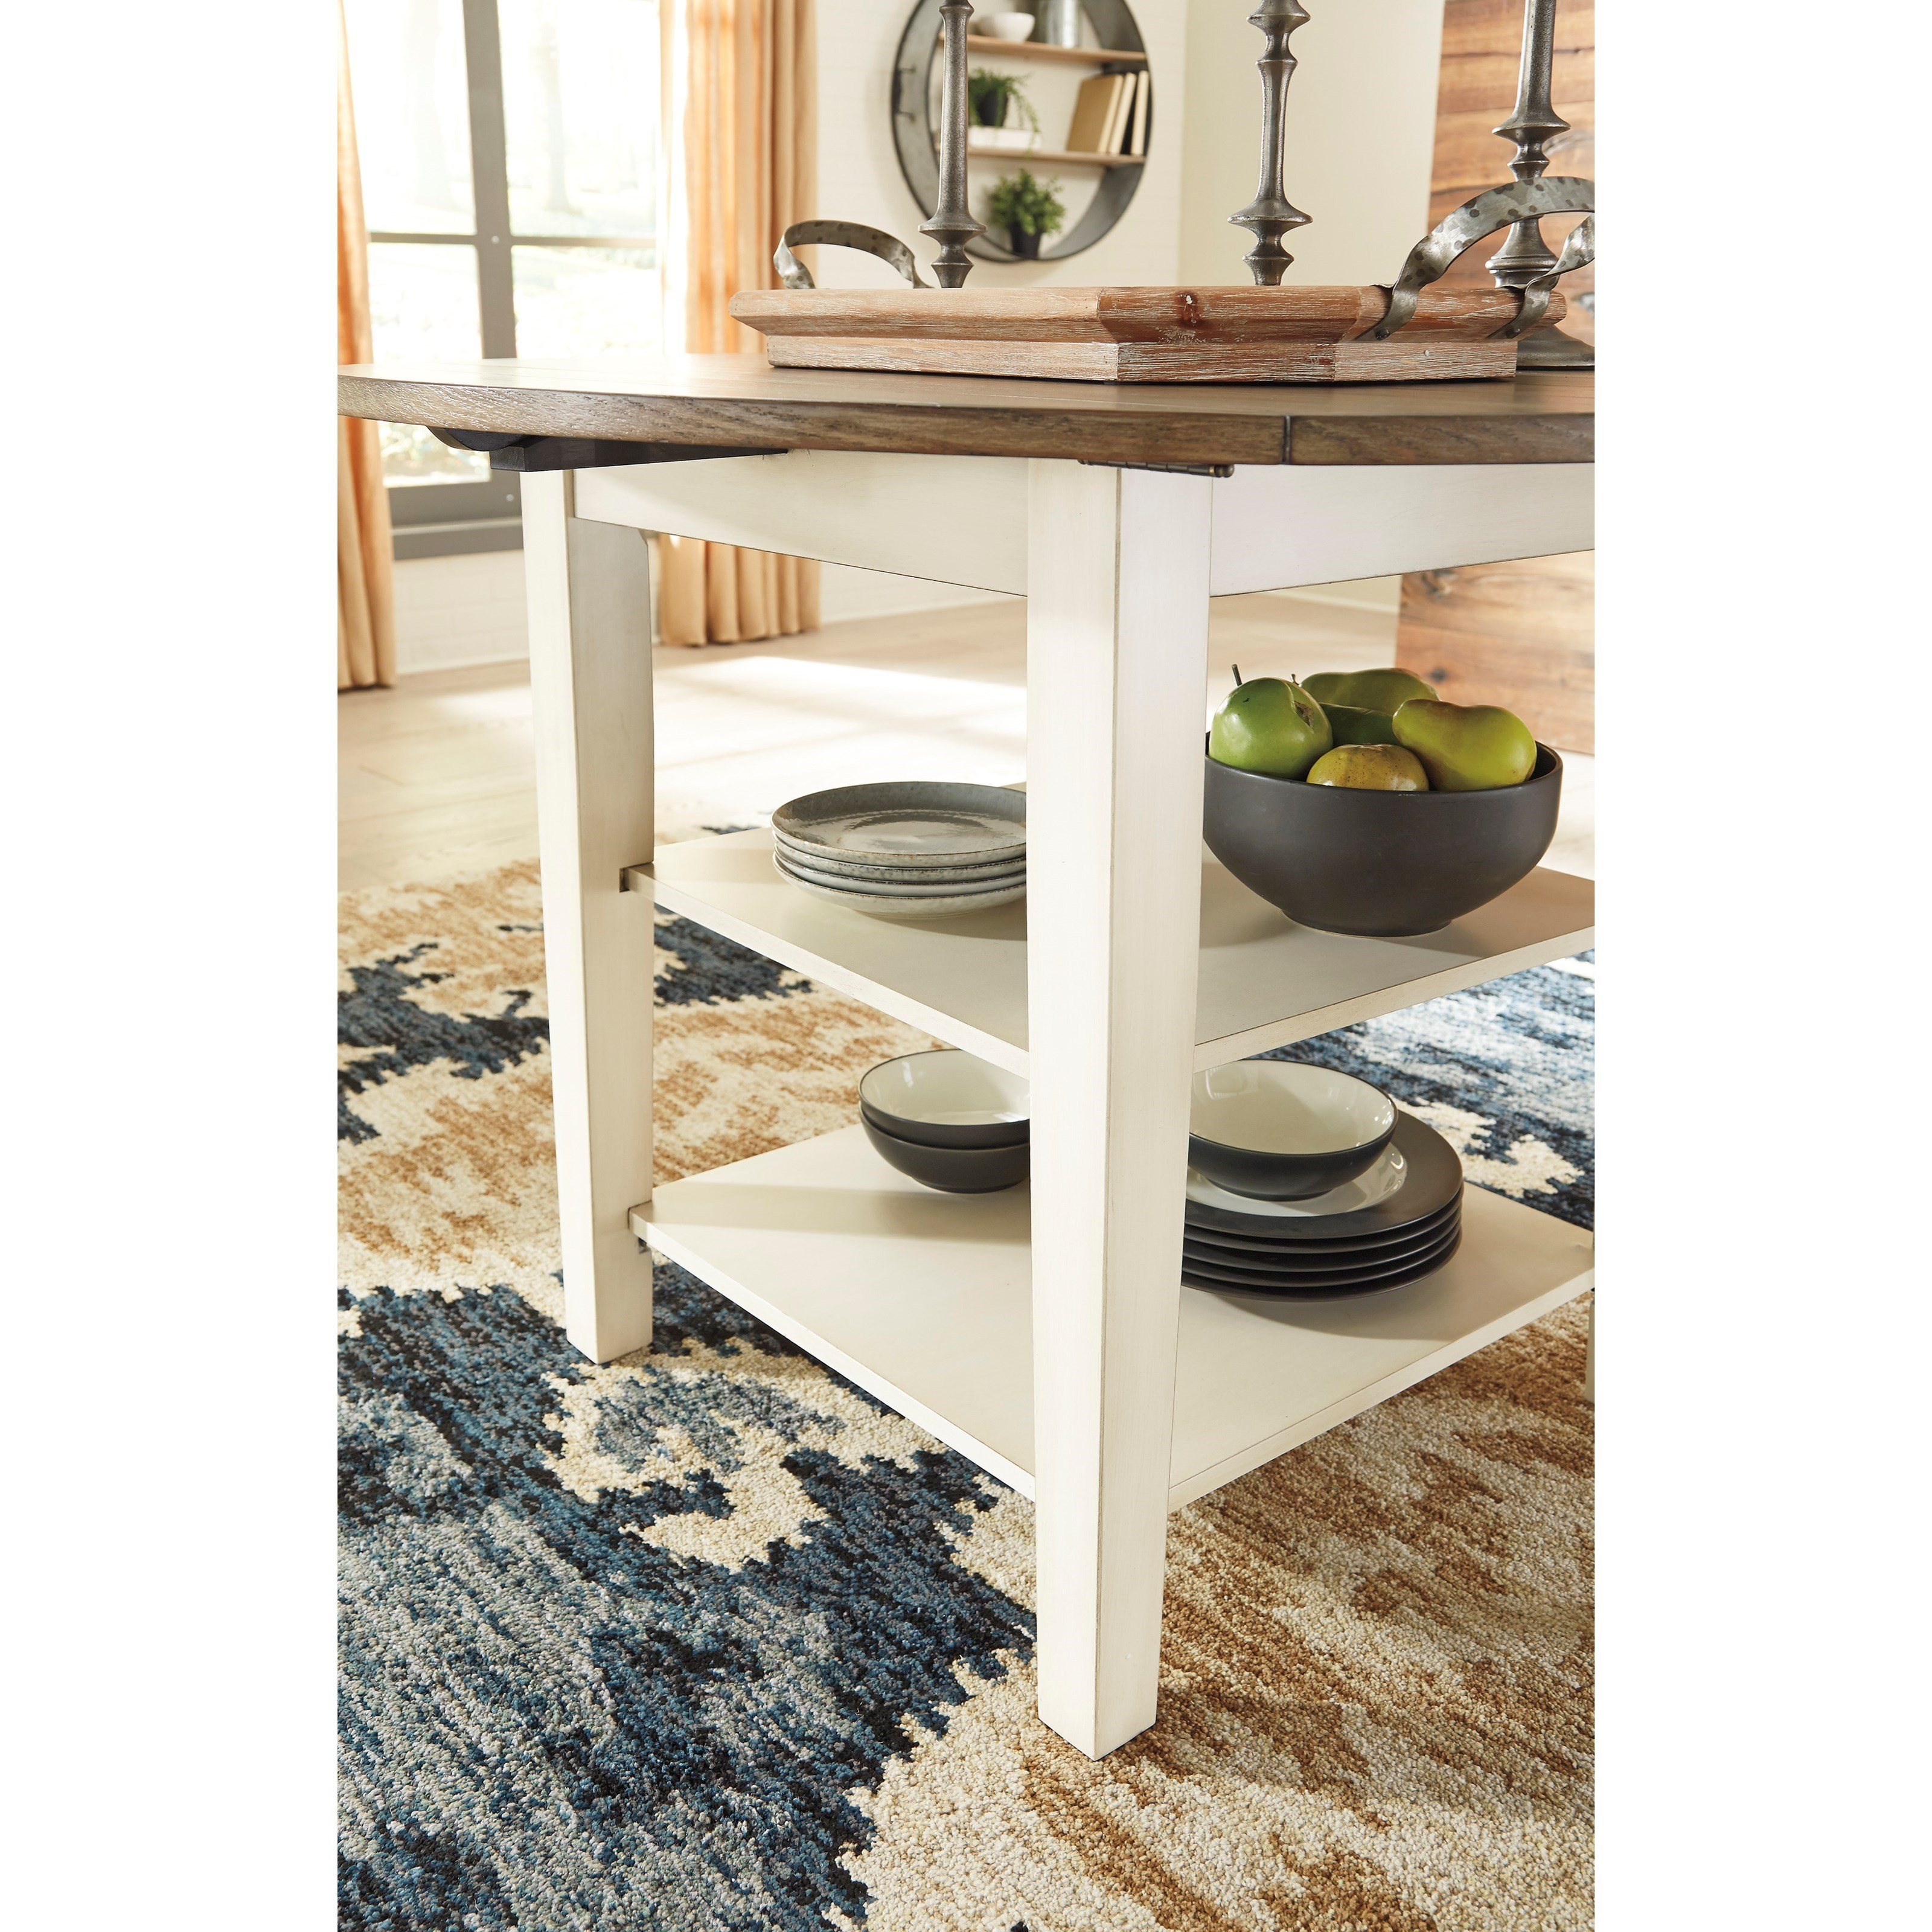 Benchcraft Bardilyn D447-15 Two-Tone Round Dining Room